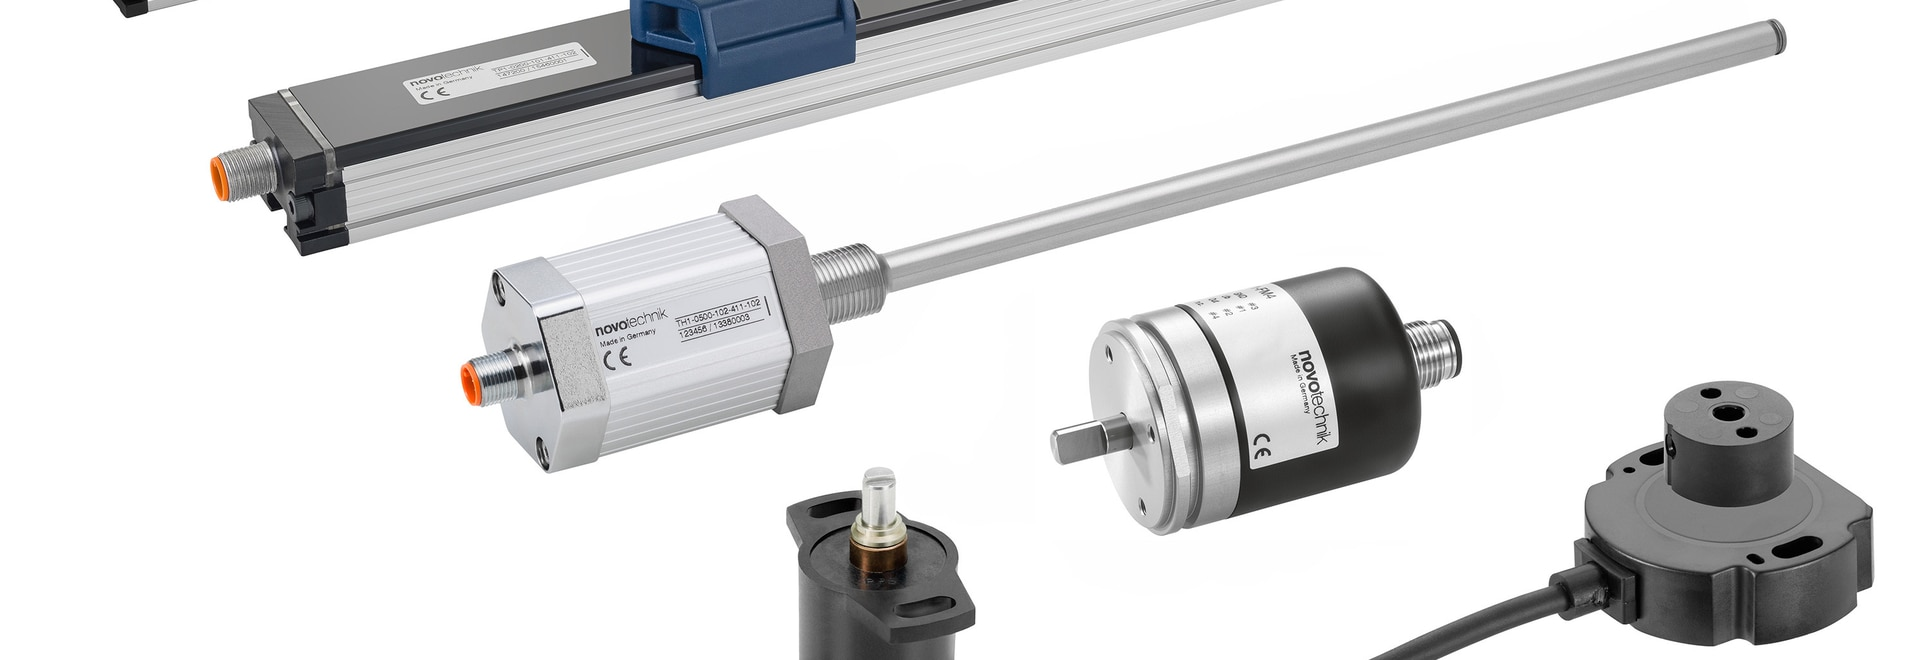 Rotary and Linear Transducers with IO-Link